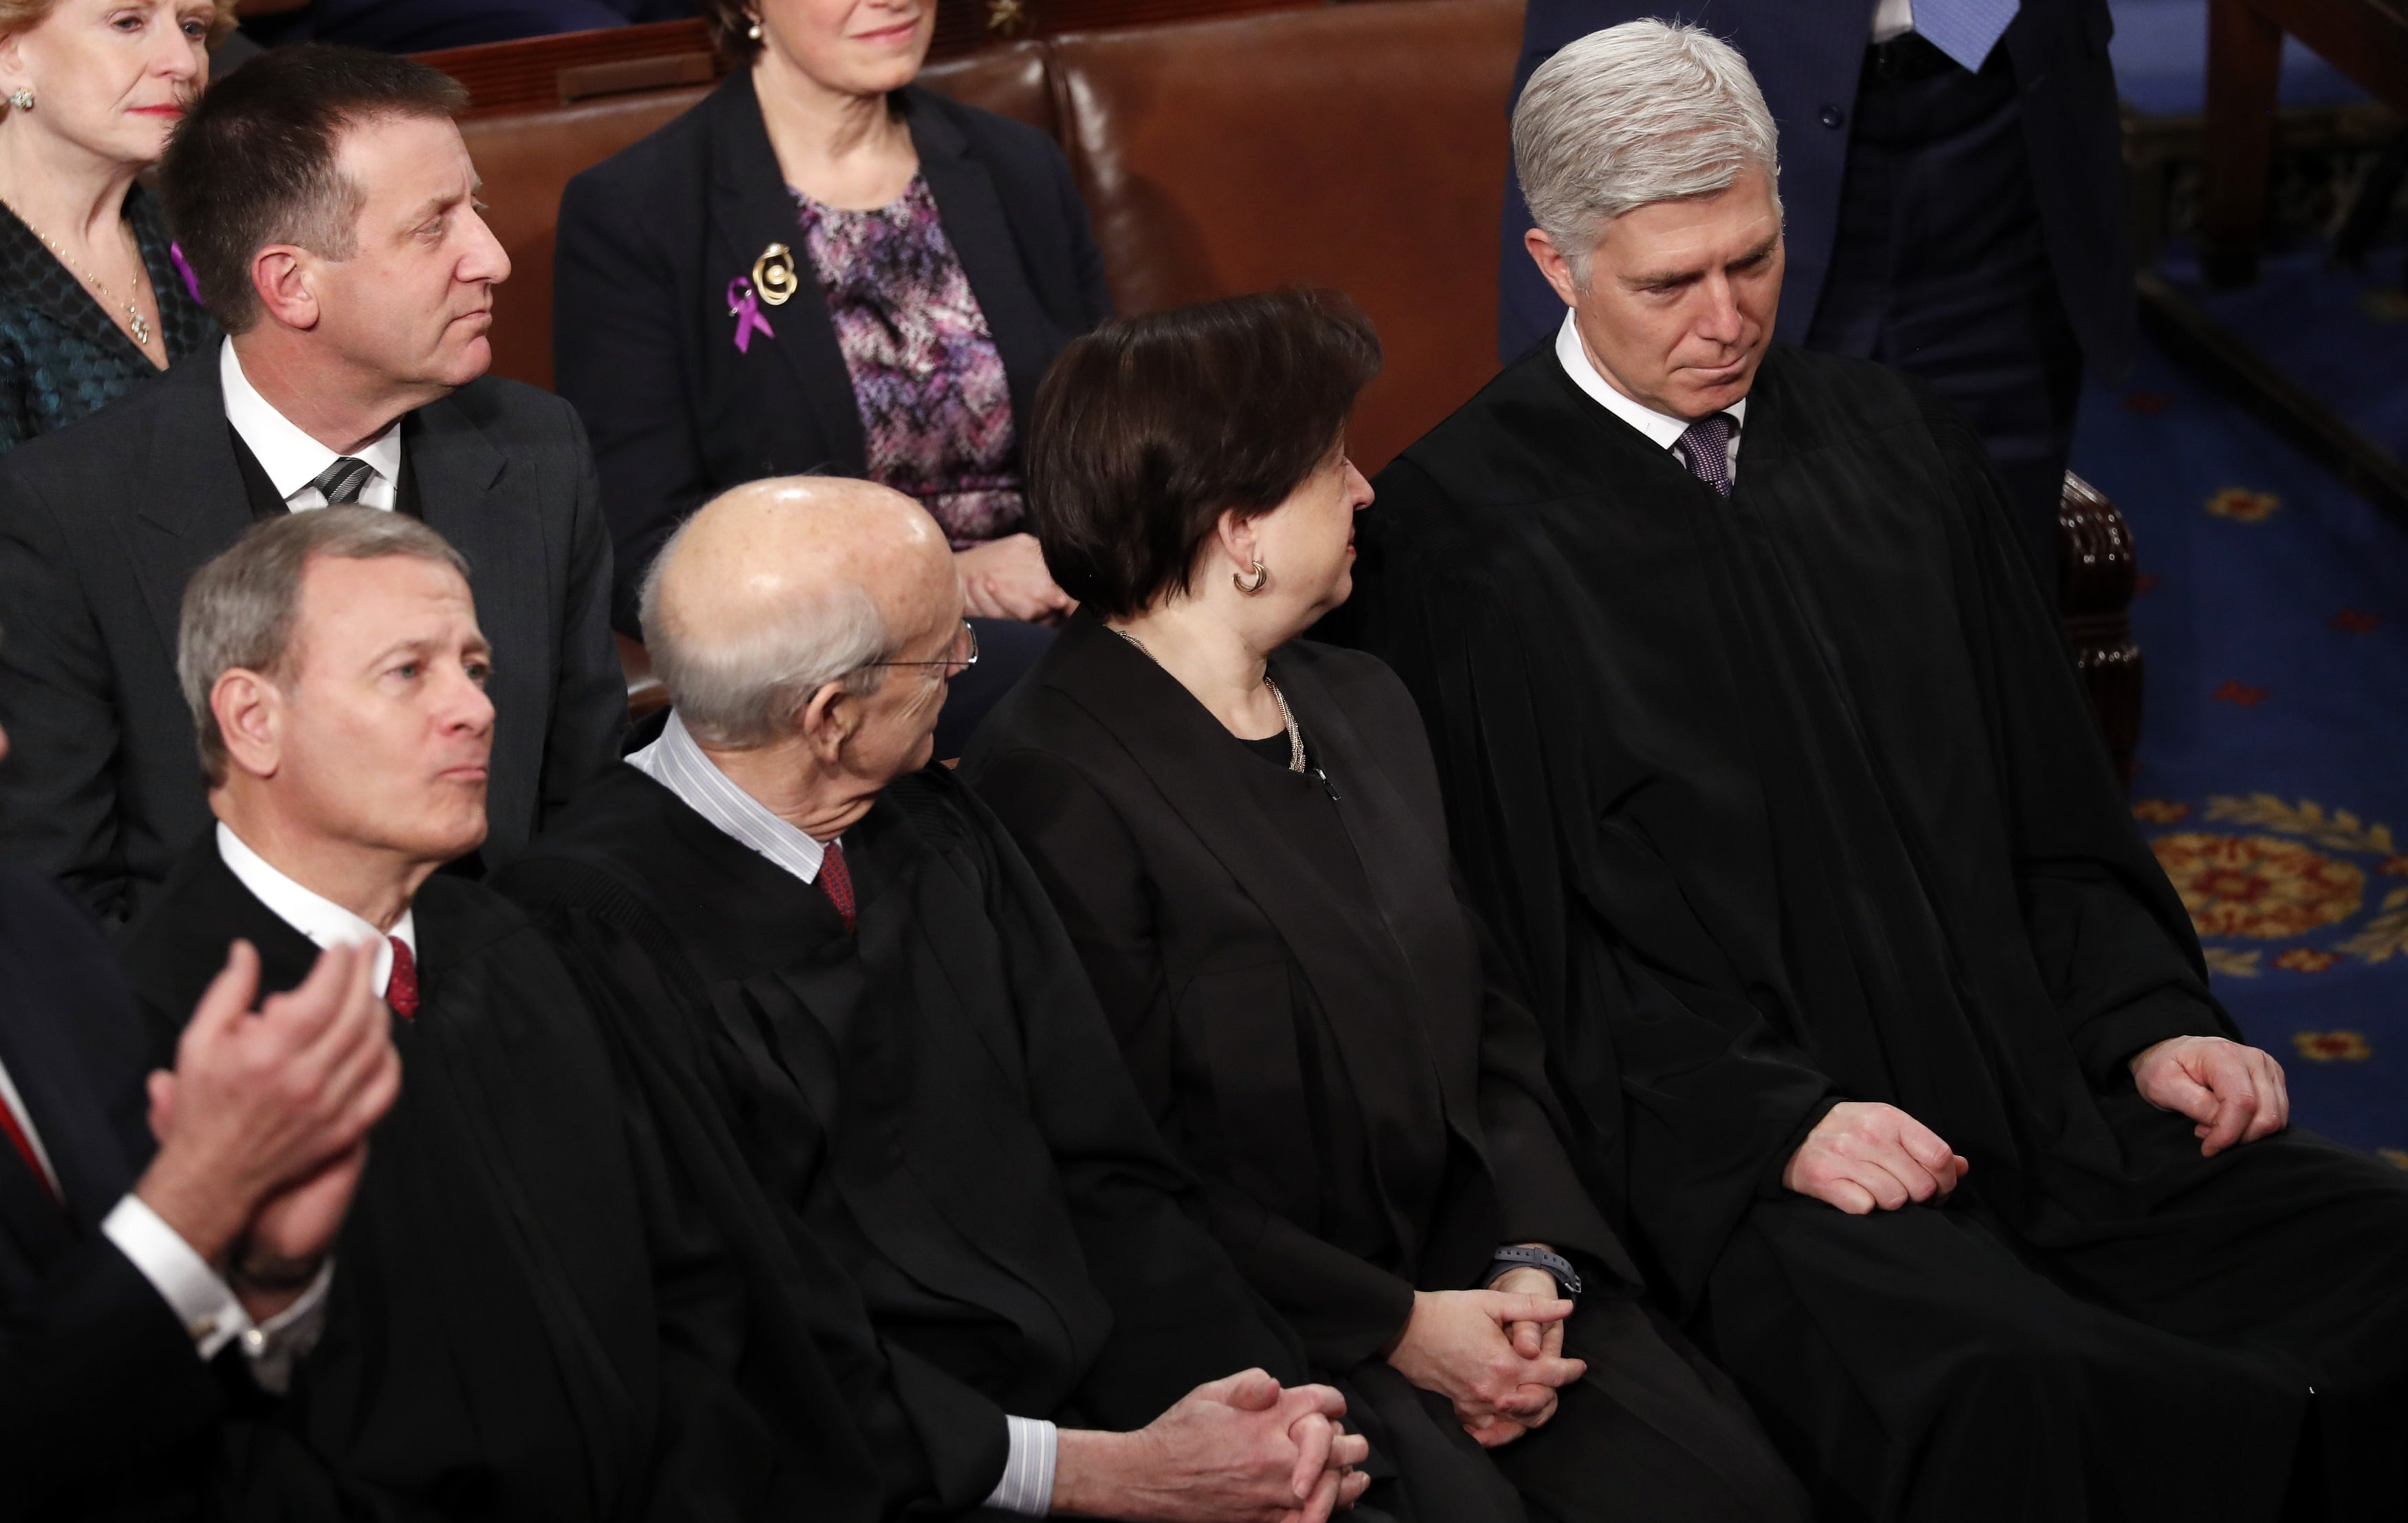 Supreme Court Chief Justices attend President Trump's State of the Union address in Washington